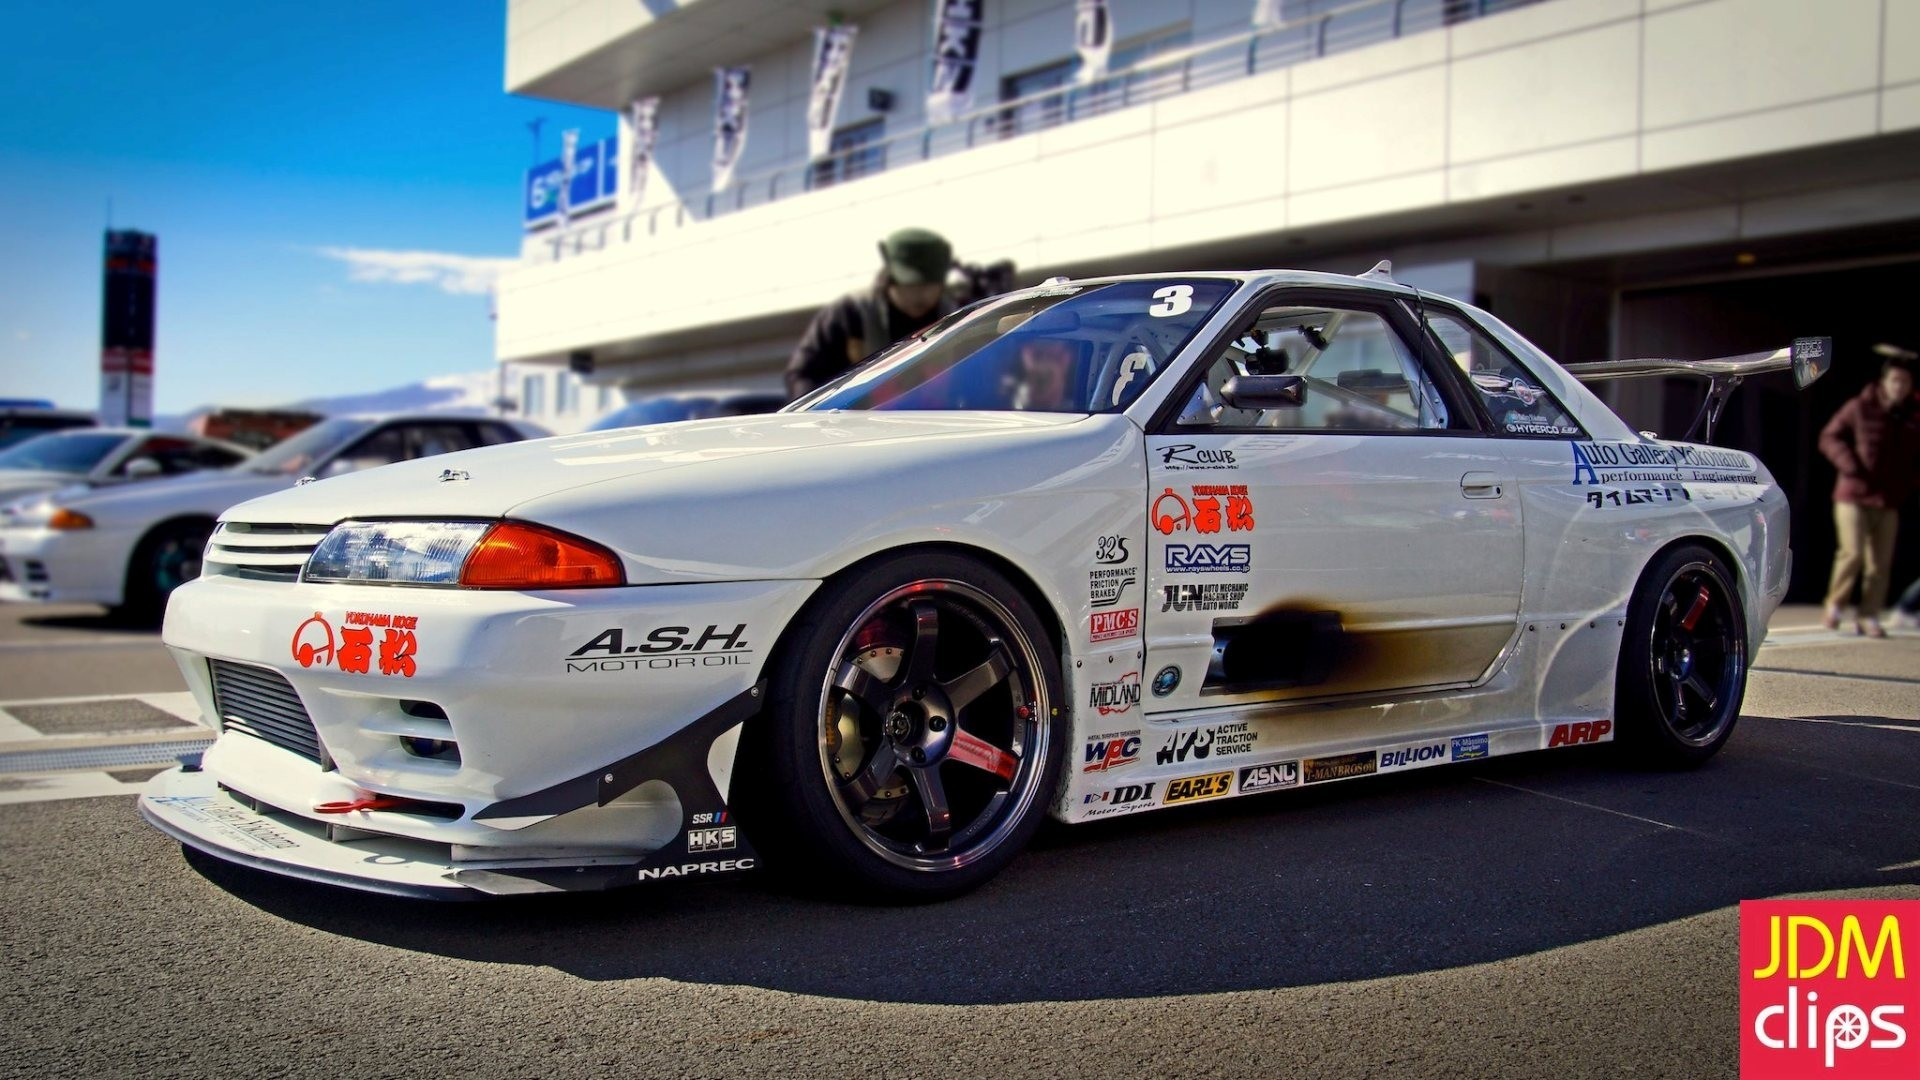 1920x1080 Nissan Skyline GT R R 32, Nissan Skyline, Nissan GT R R32, Nissan, JDM  Wallpapers HD / Desktop and Mobile Backgrounds